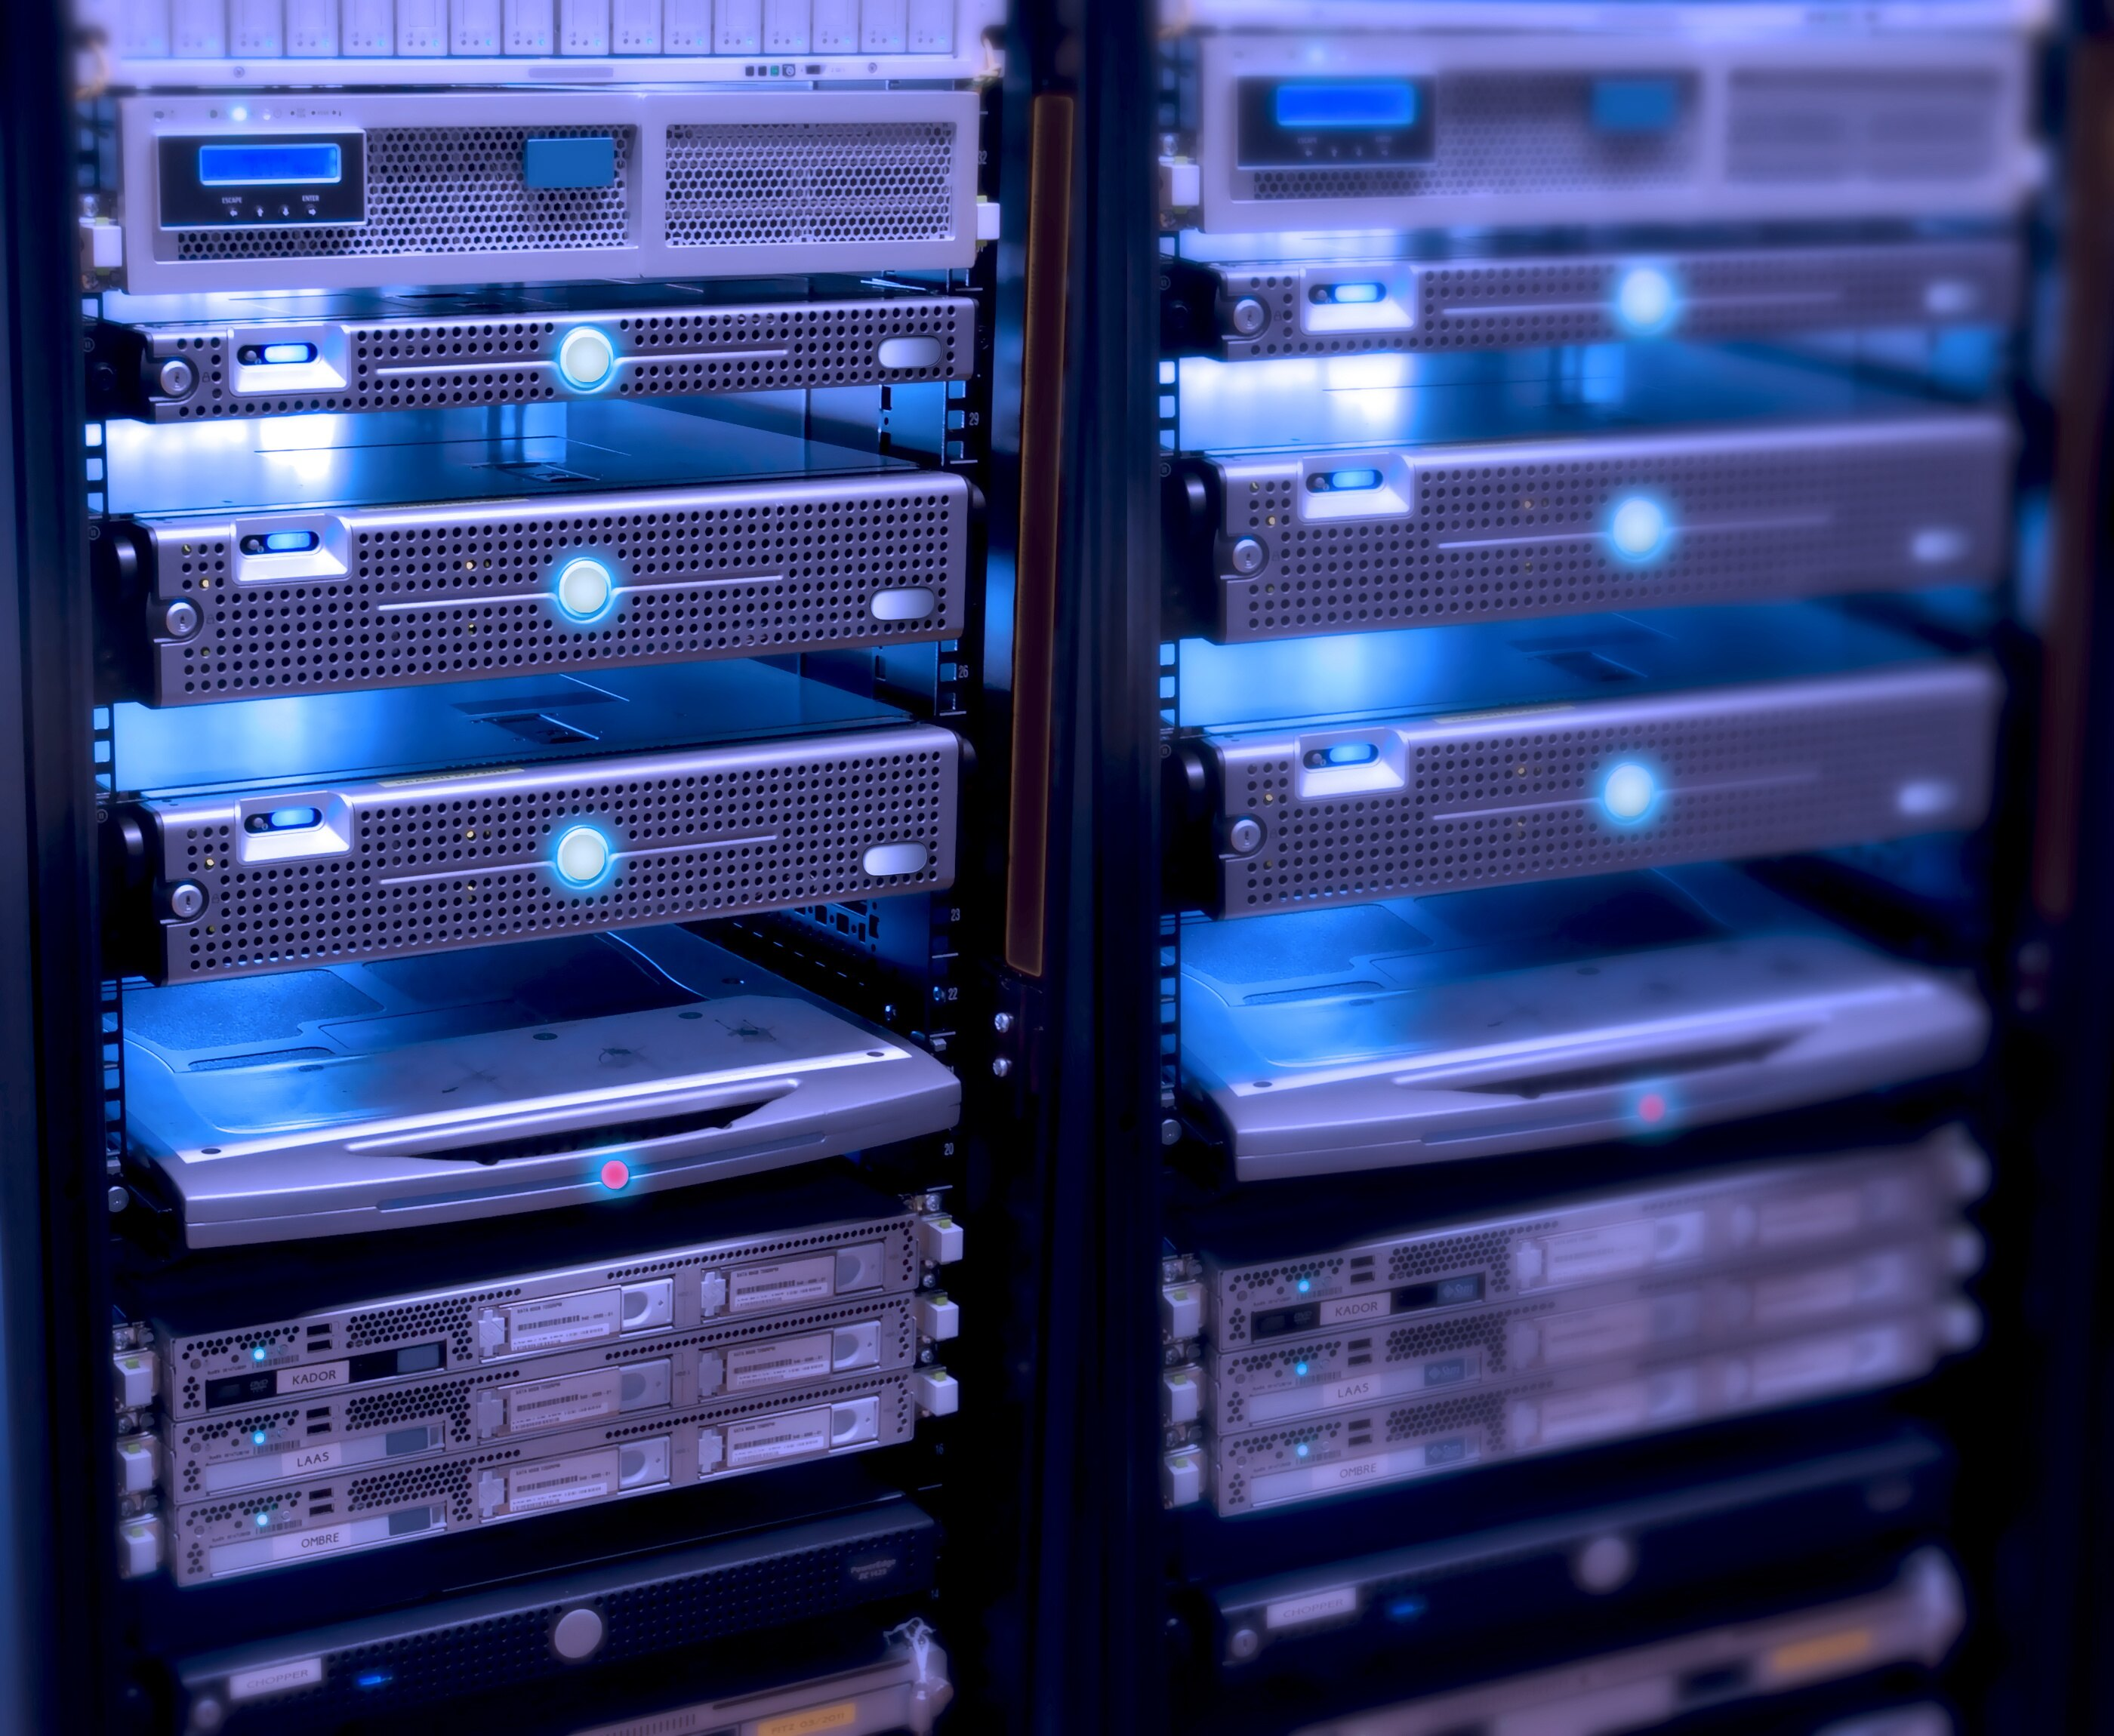 Is ¼ Rack Colocation Space The Right Choice For My Business?